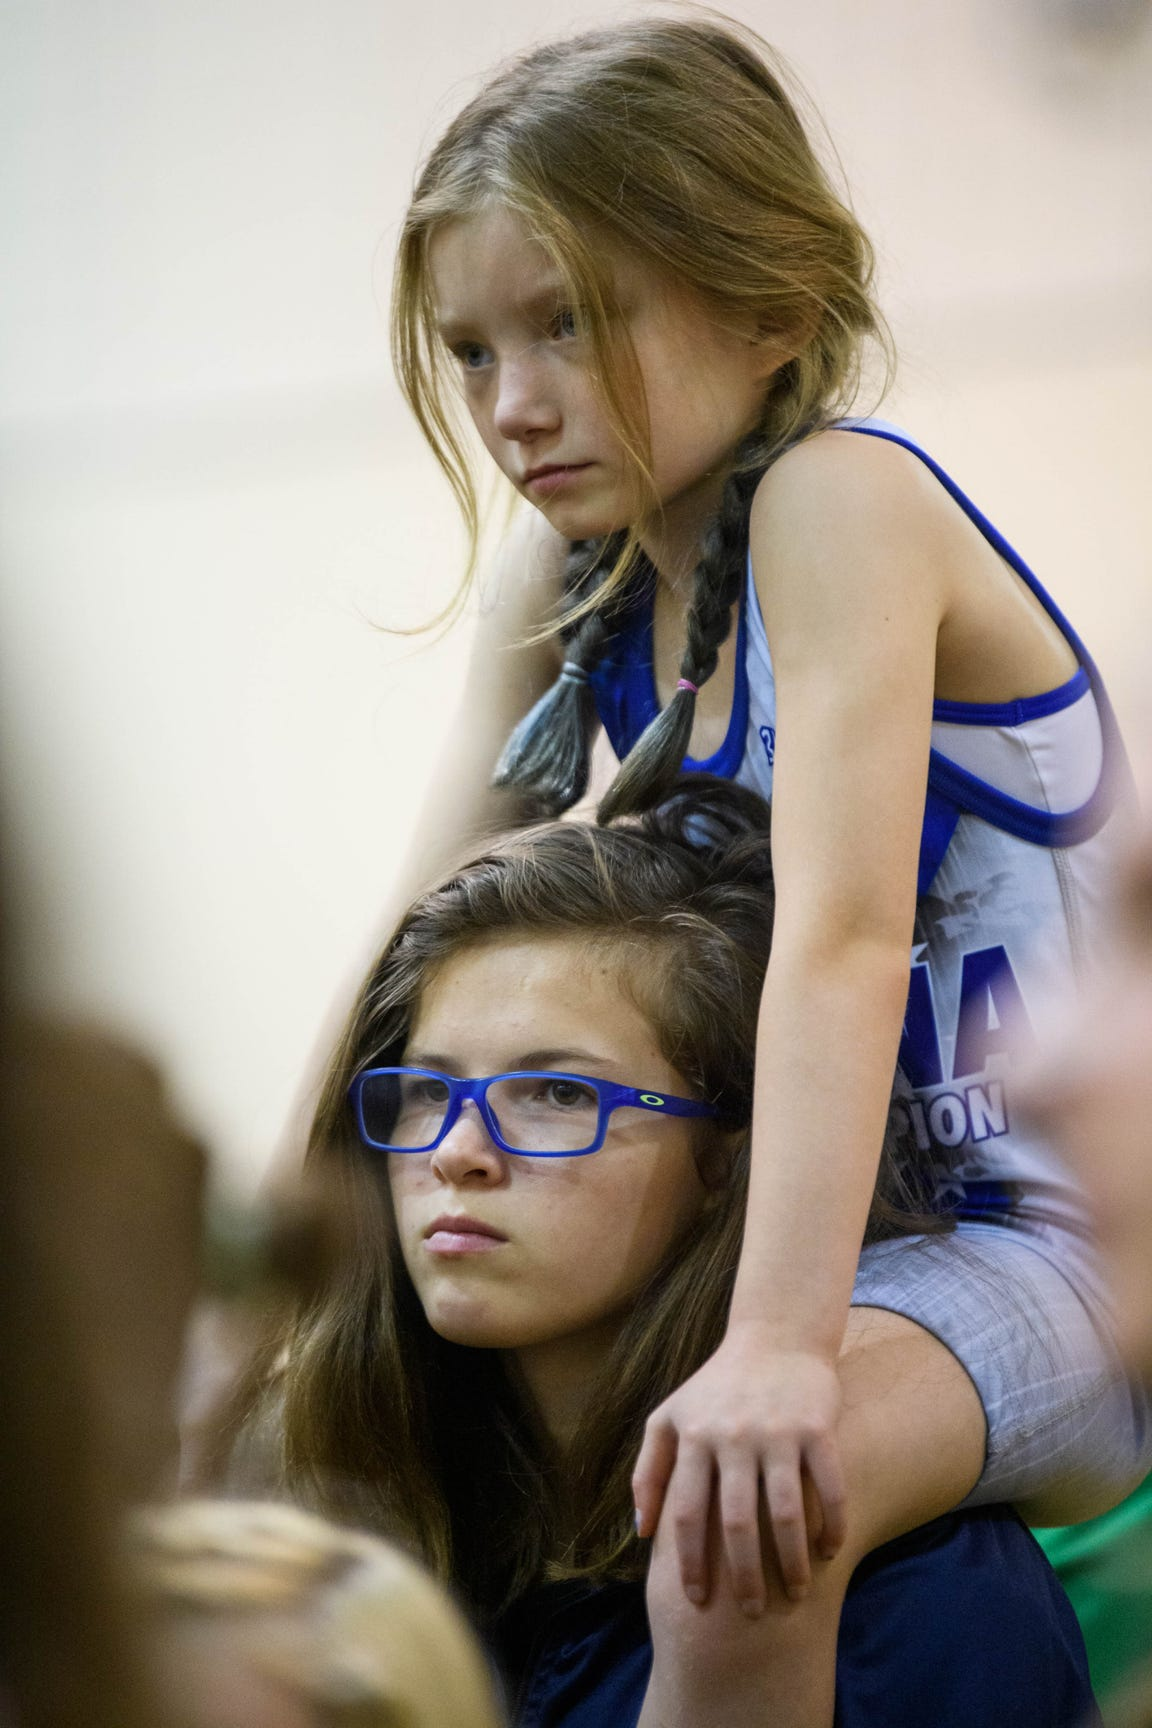 Eight-year-old Gloria Cloud and Kaylie listen to an opening speech from Jason DeLois, president of Indiana Girls Wrestling, before the start of the Indiana State Wrestling Association Women's Freestyle State tournament at Avon High School in Avon, Ind., Sunday morning, May 5, 2019. There were 257 high school girls wrestlers in Indiana last season, according to DeLois.